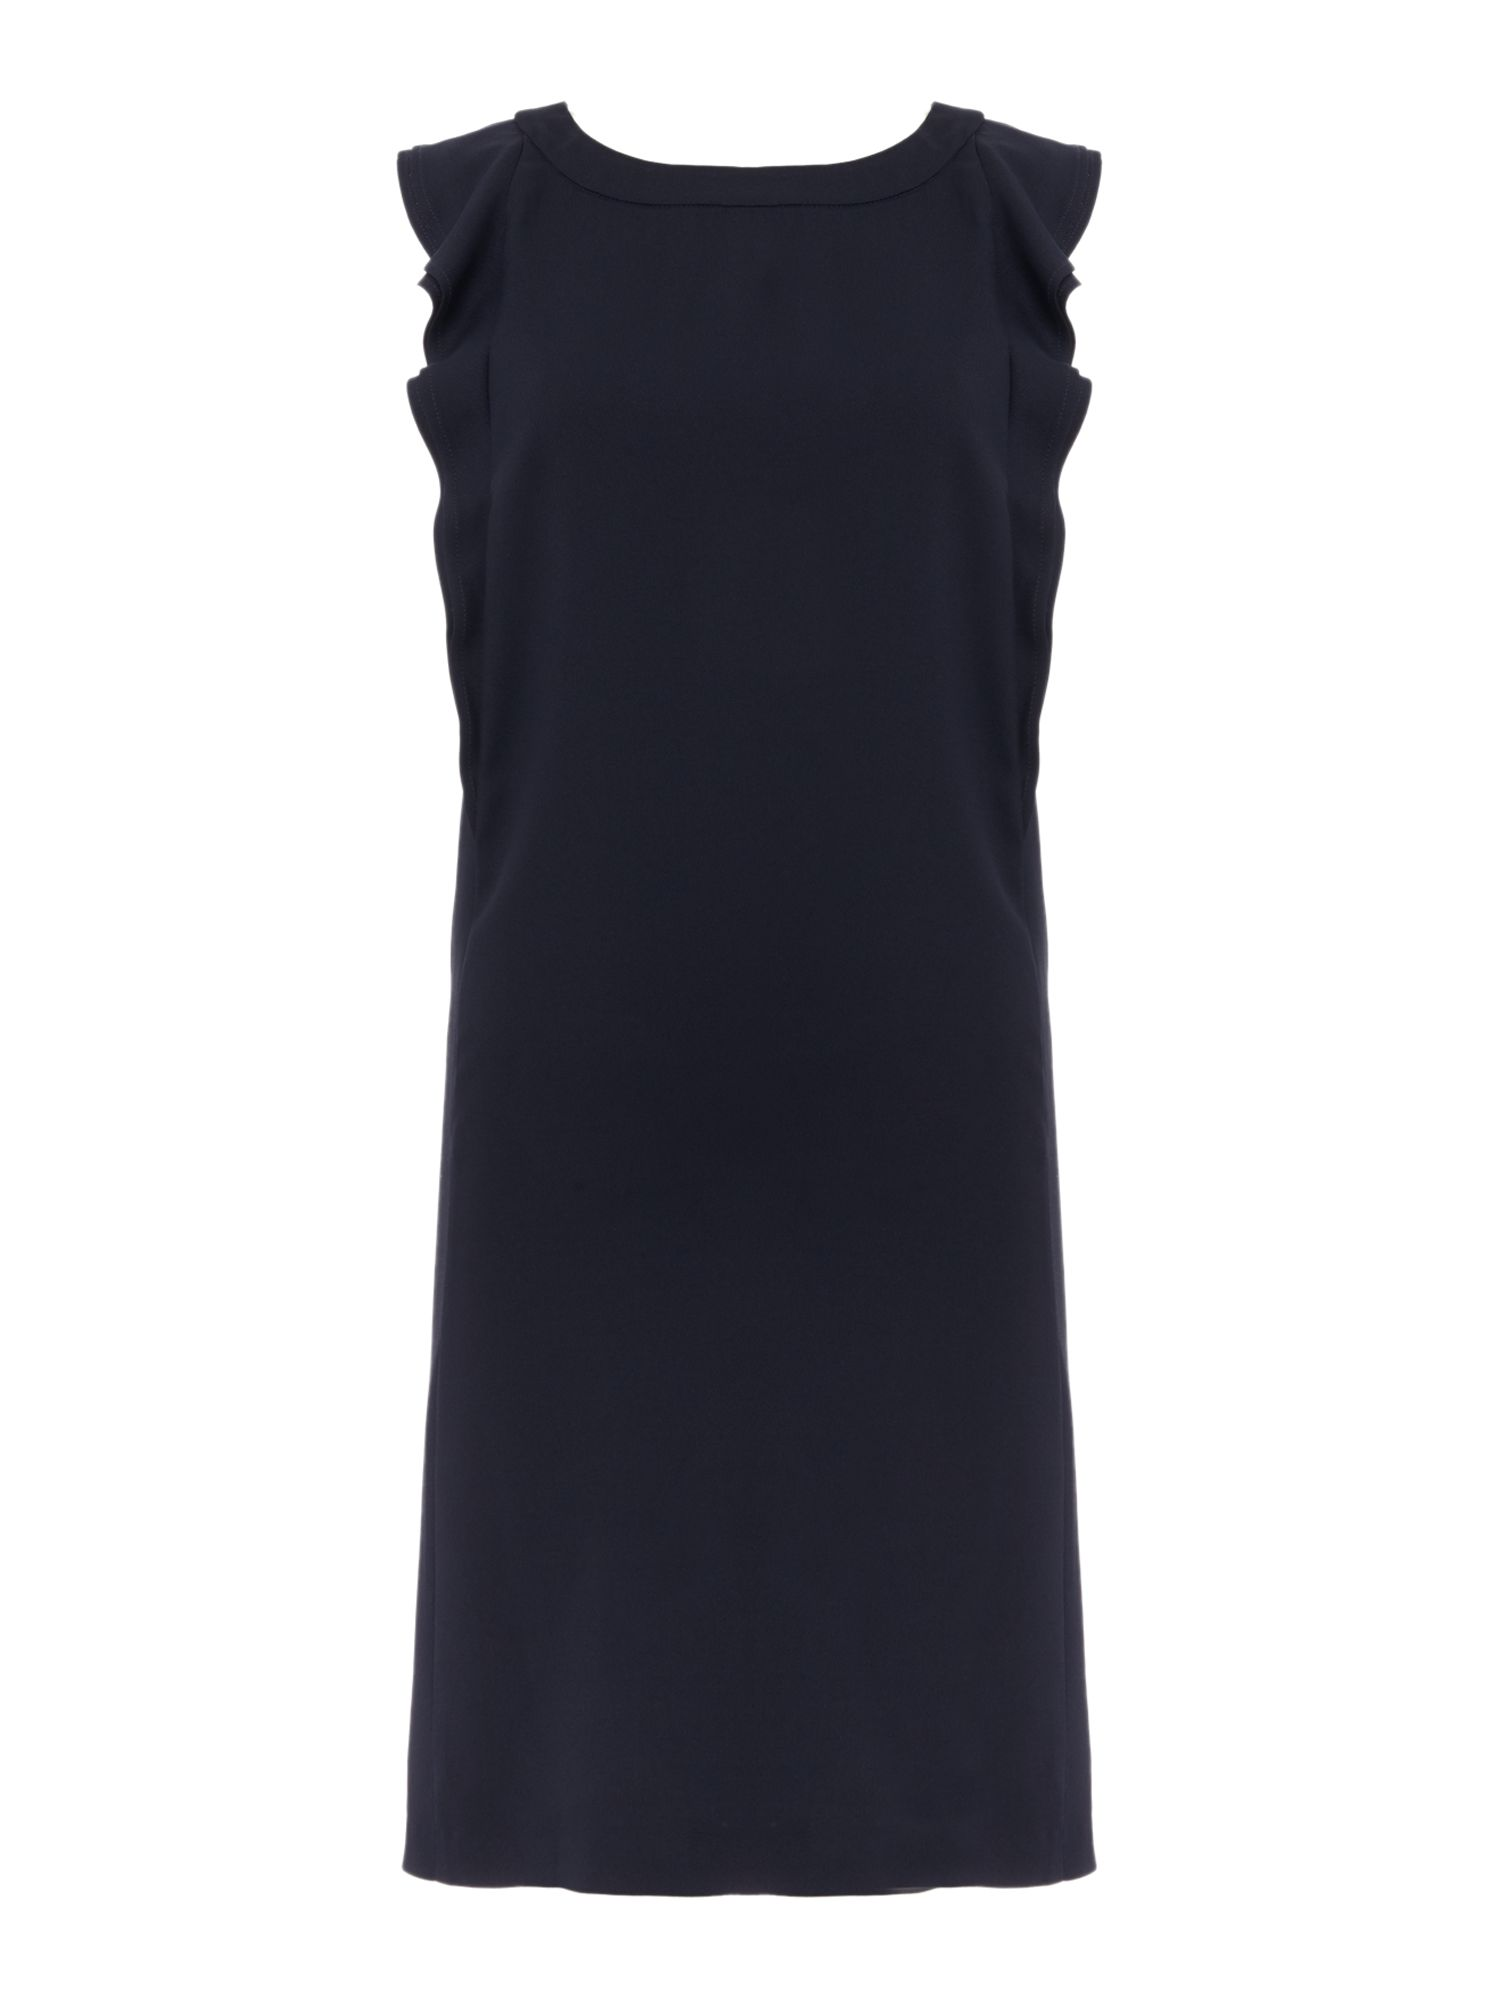 Marella BASCO crepe dress with ruffle detail, Midnight Blue